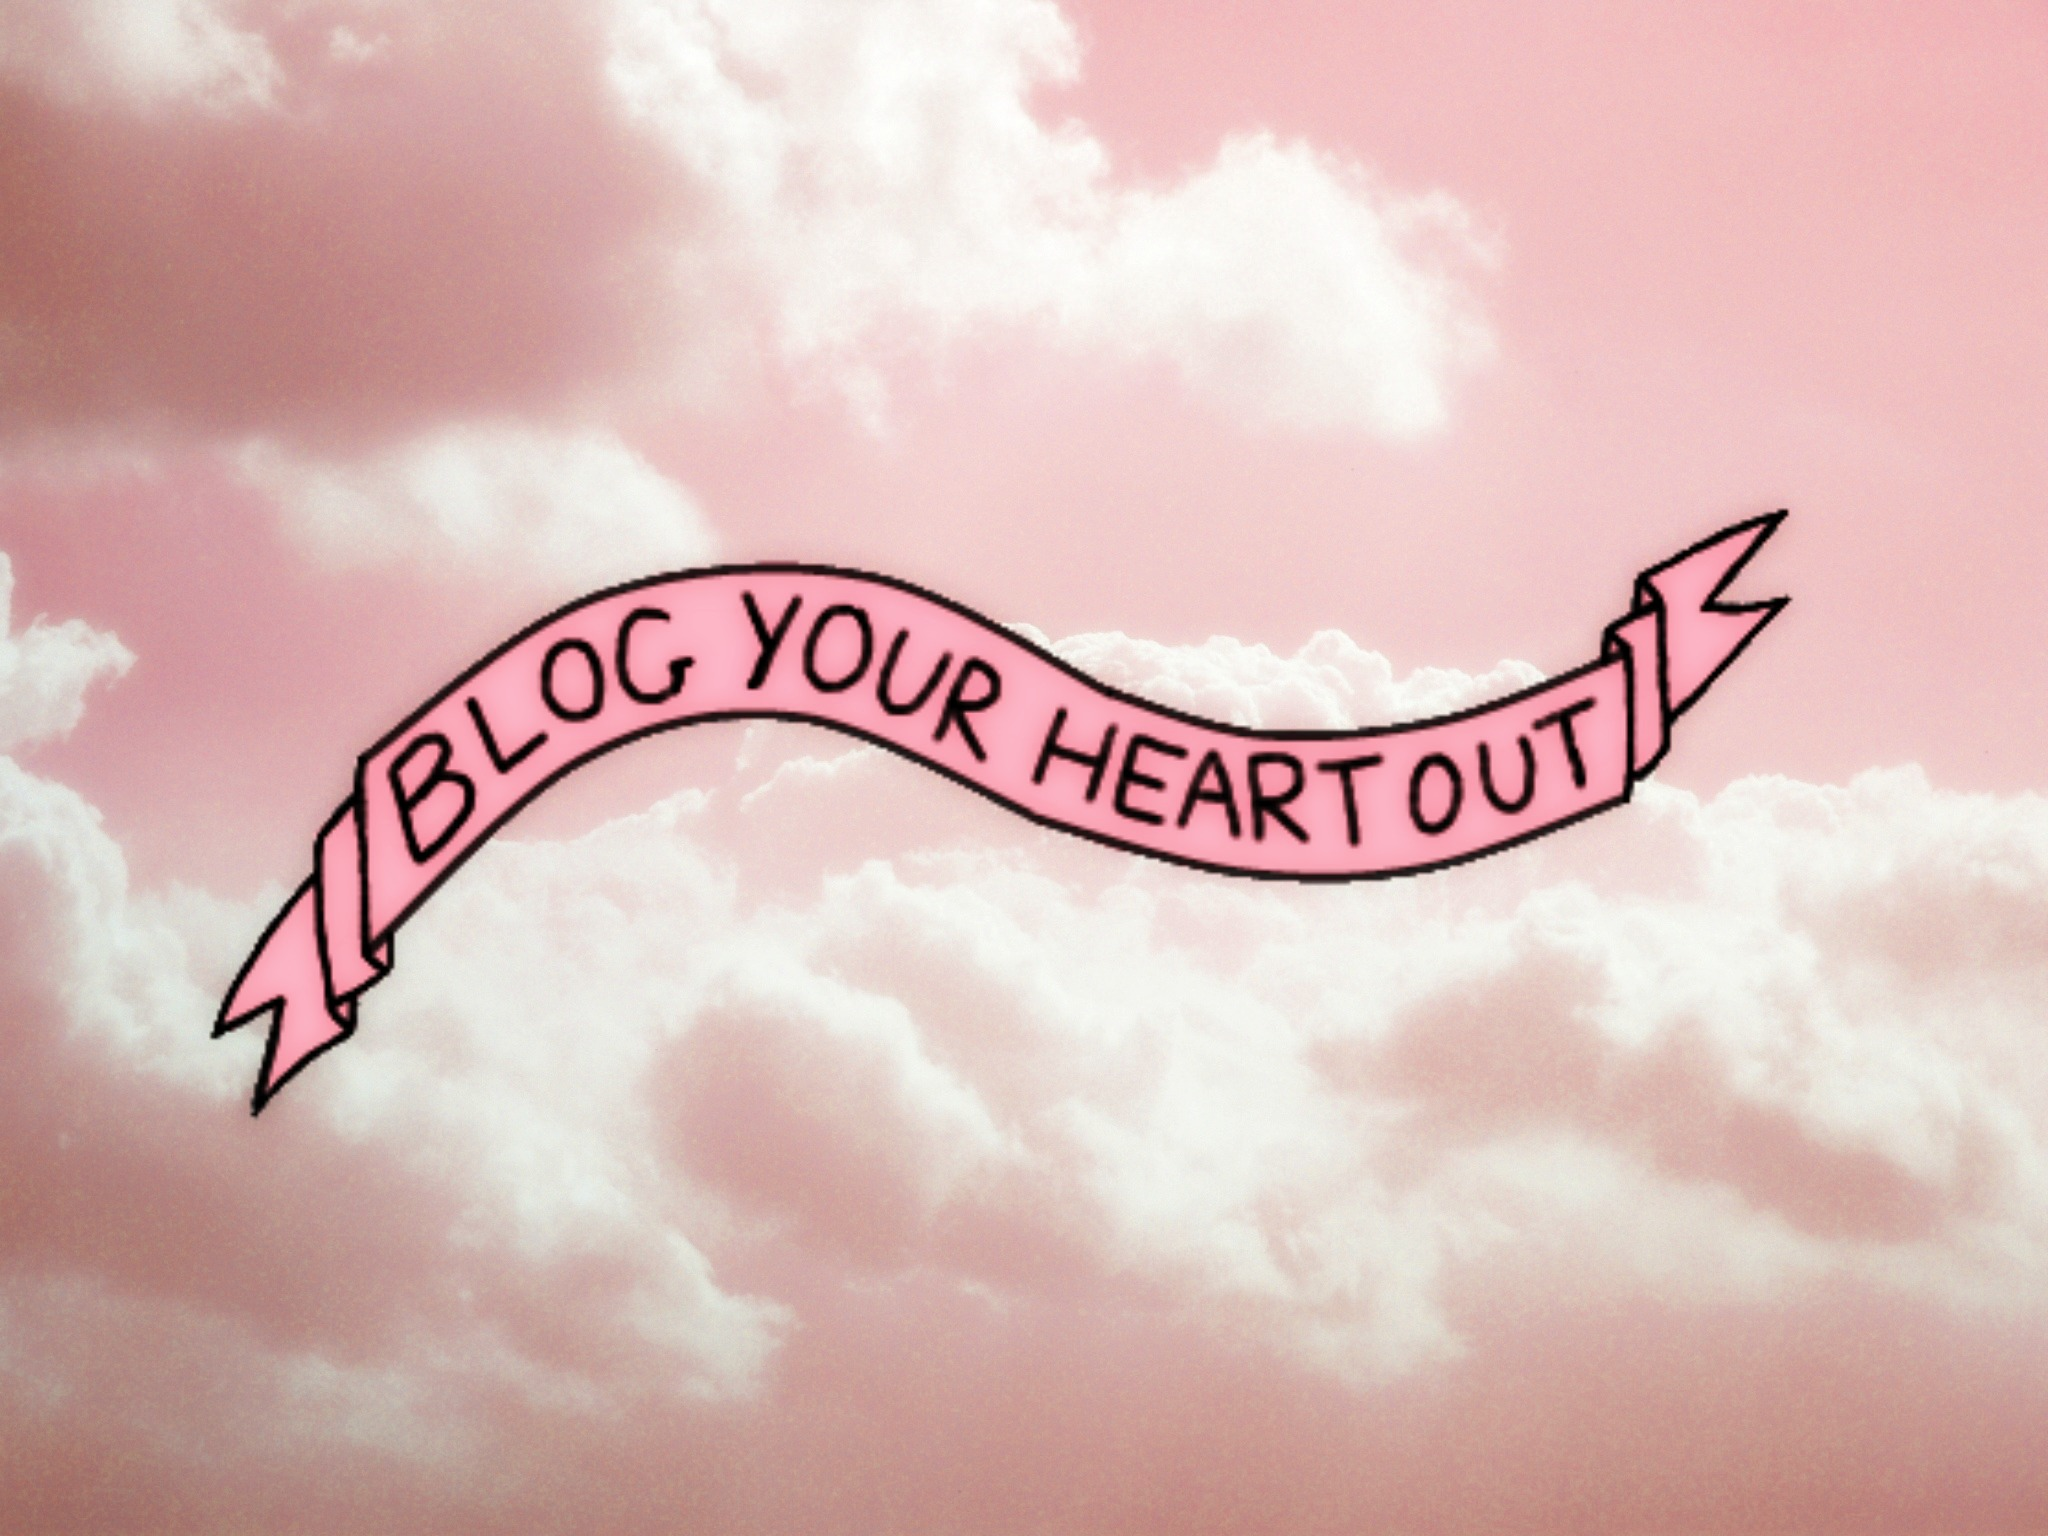 I will add clickable links to your Tumblr blog